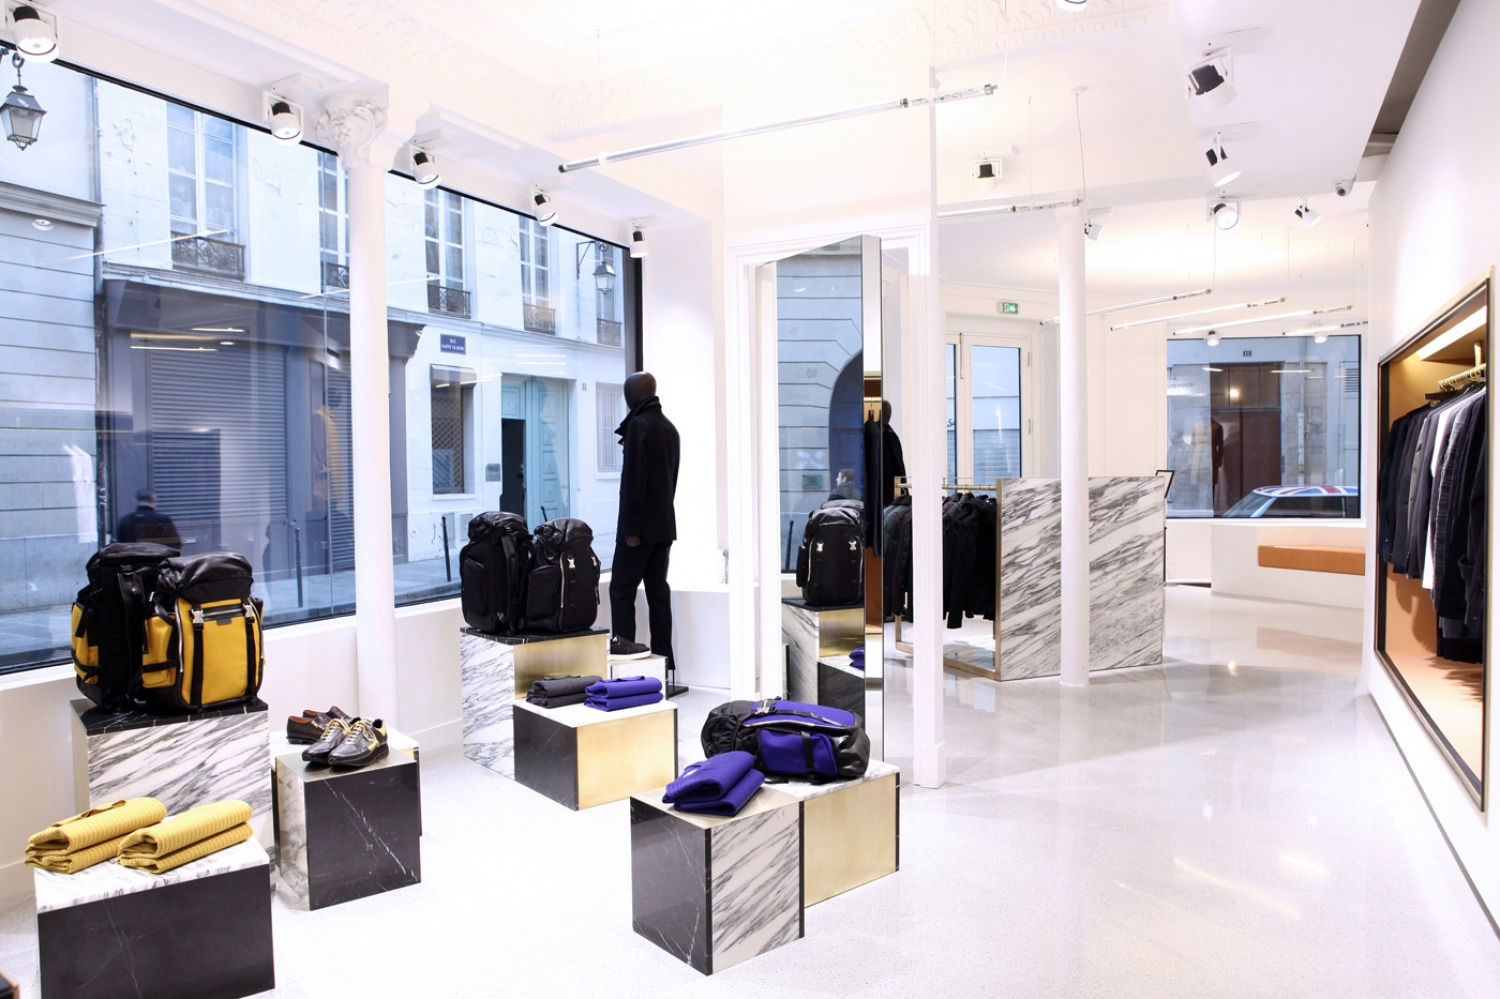 Architecture - STÉPHANE GHESTEM - Wooyoungmy boutique. Paris III